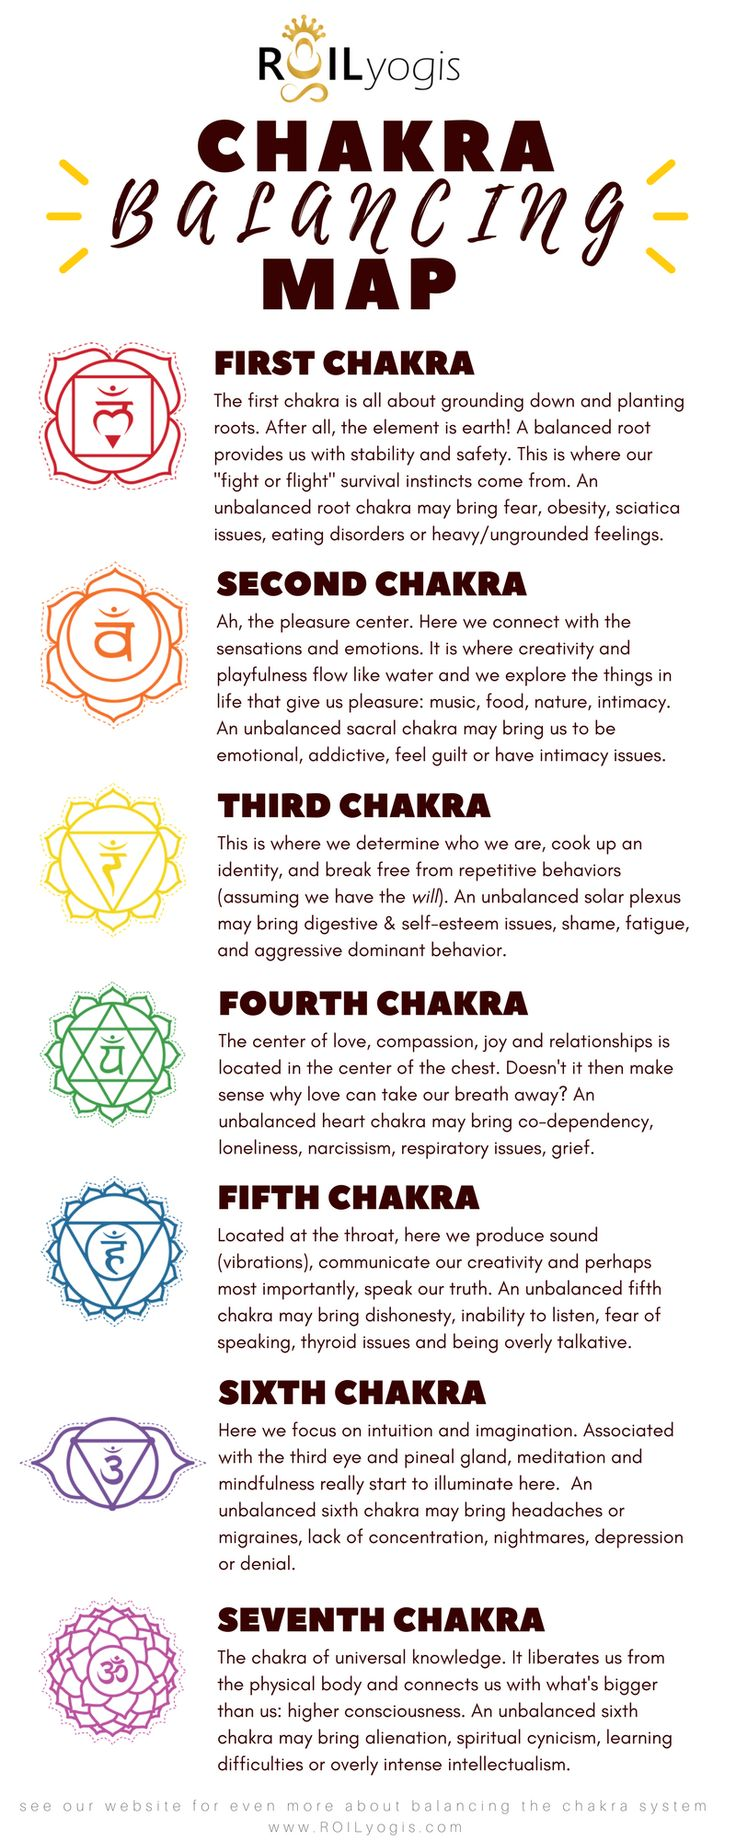 247 best reiki images on pinterest chakra healing yoga meditation reiki each chakra has a symbol color element and relation to our current emotional and physical well being that help us to understand our perceptions buycottarizona Choice Image